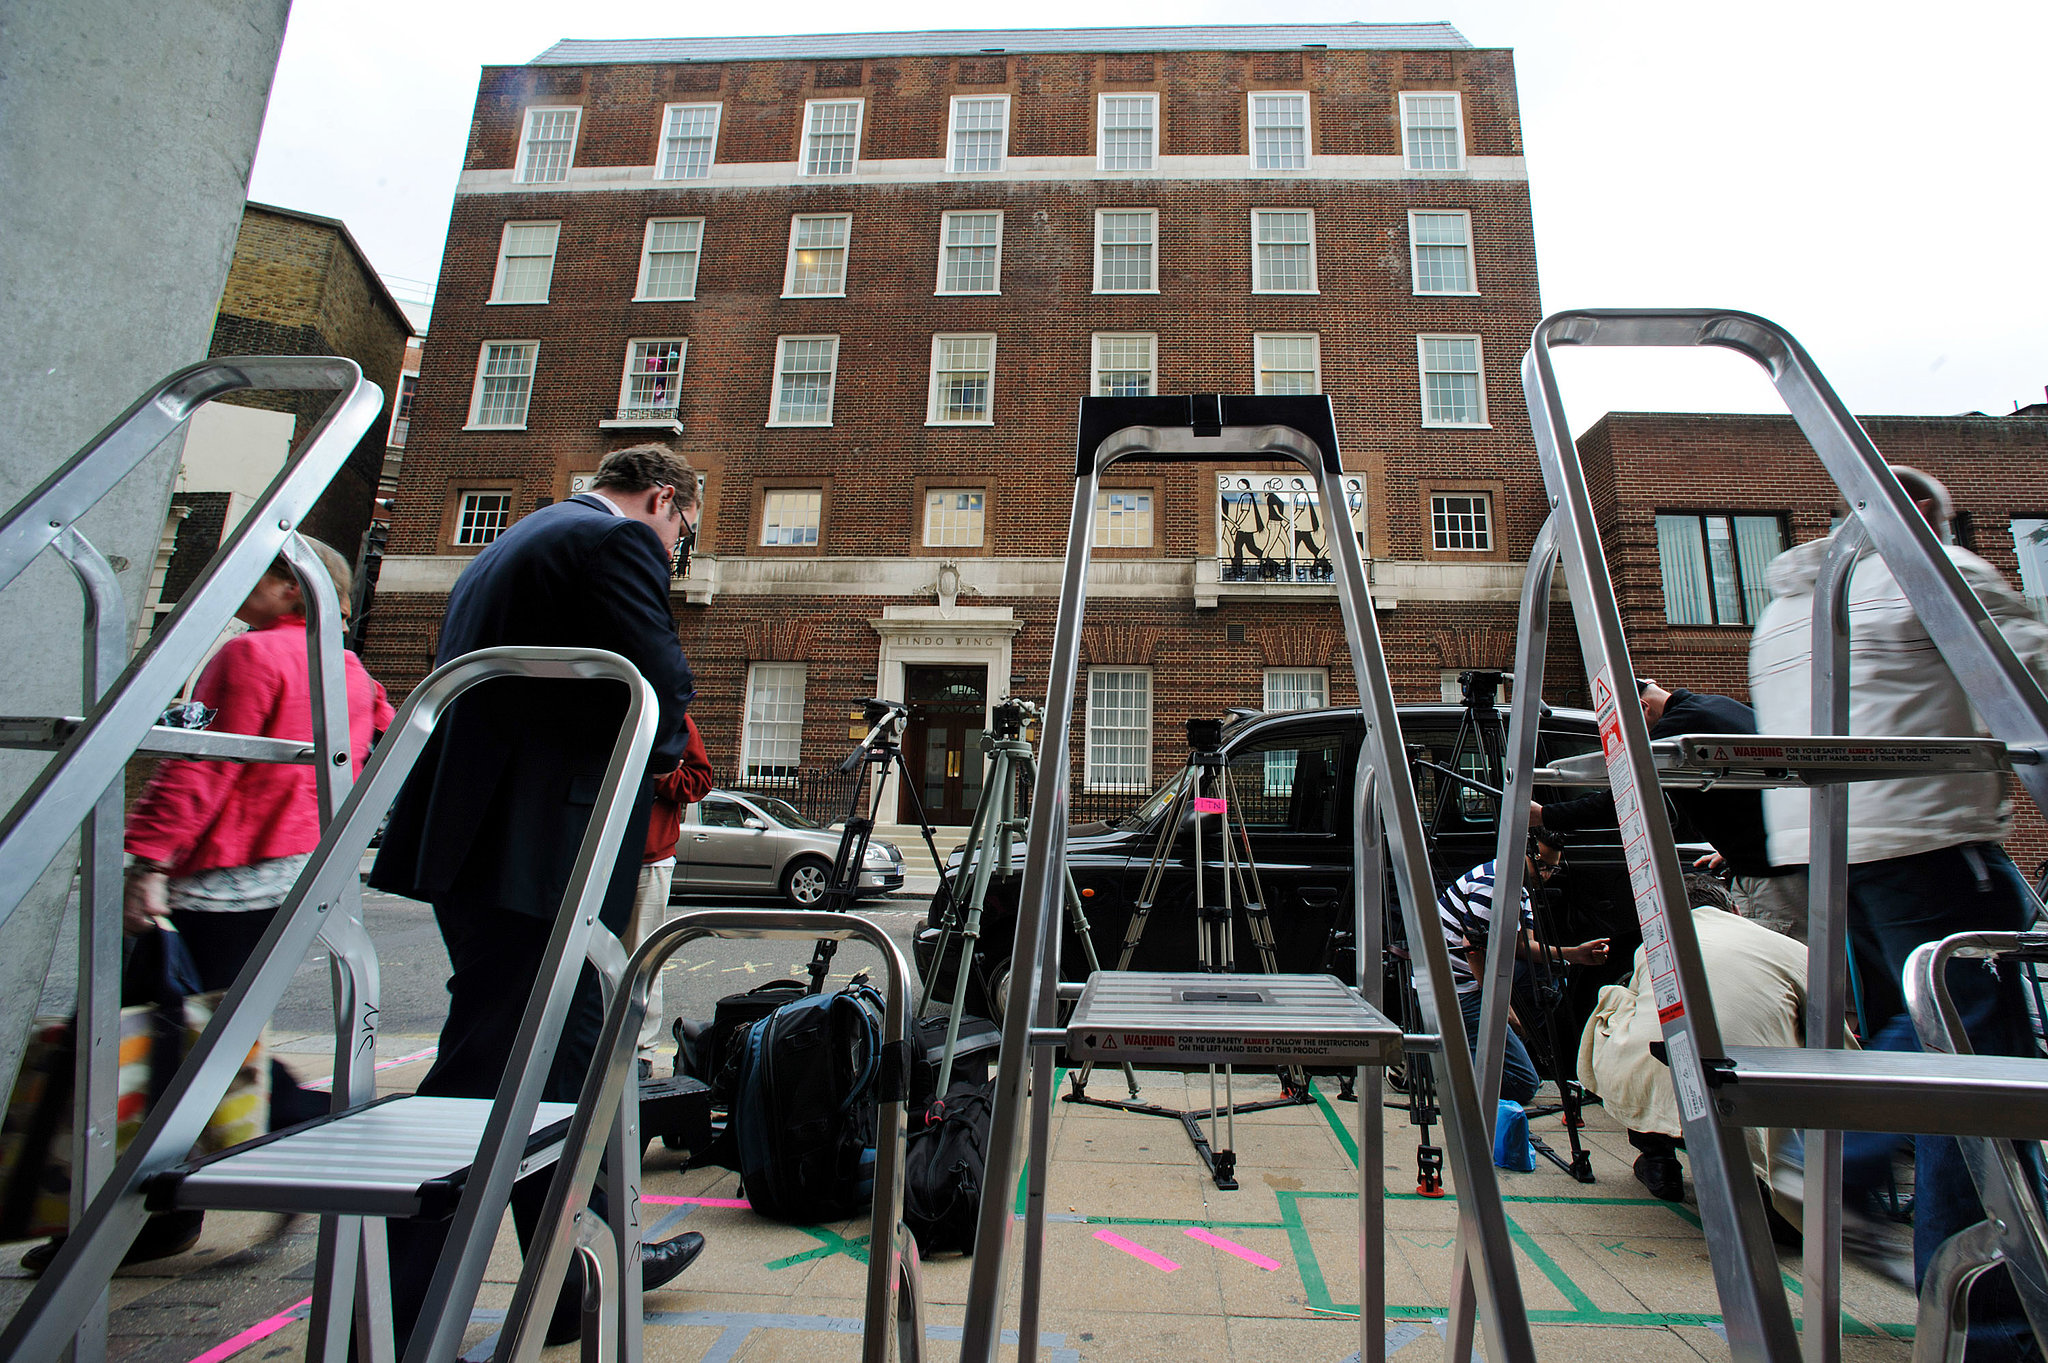 Press ladders are lined up outside St. Mary's Hospital in London.